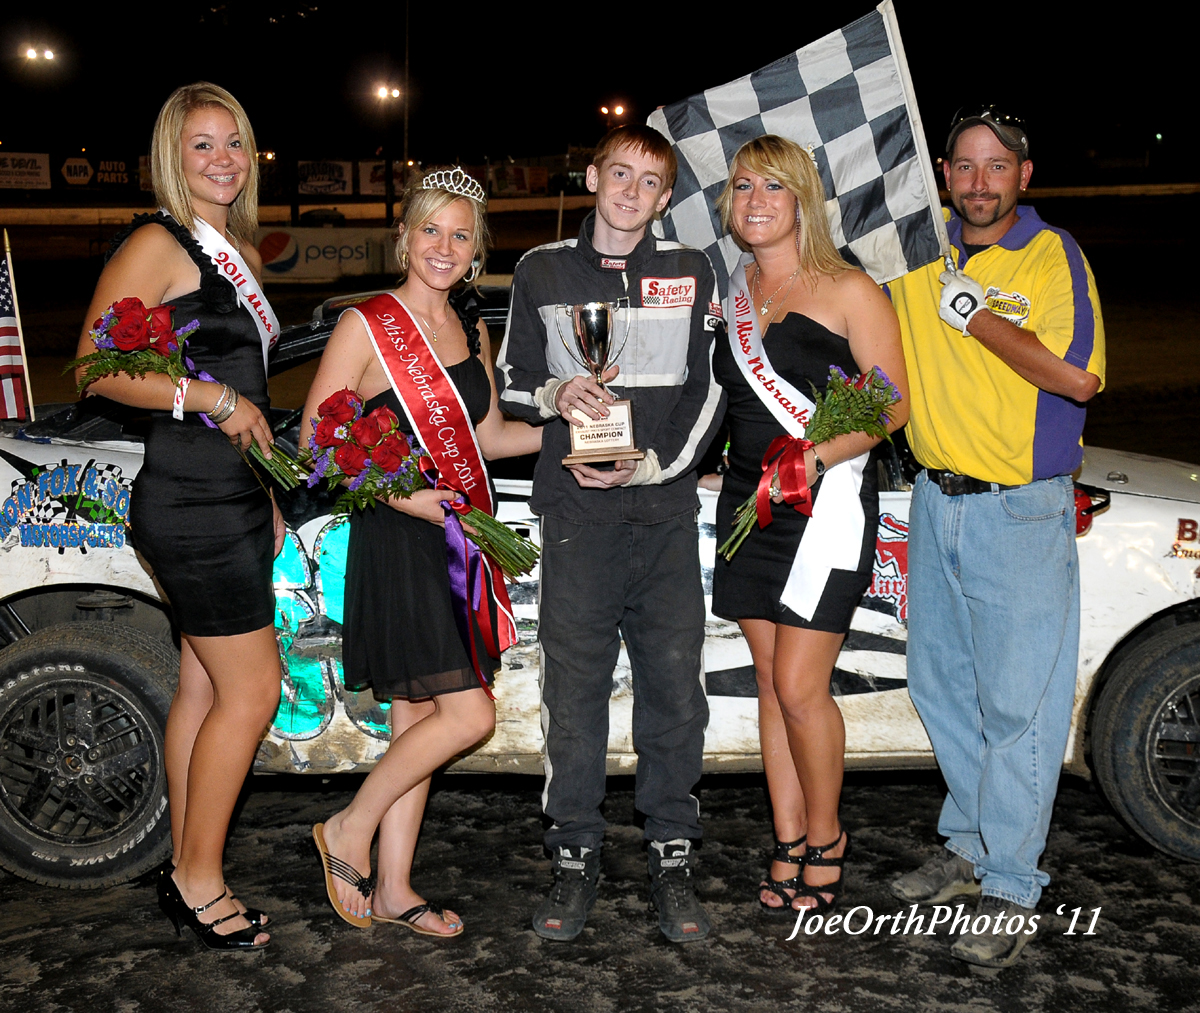 eagle-09-11-11-ne-cup-trevor-noonan-with-2011-miss-nebraska-cup-queen-deanne-kathol-and-2011-finalist-elle-patocka-and-lindsey-flodman_0